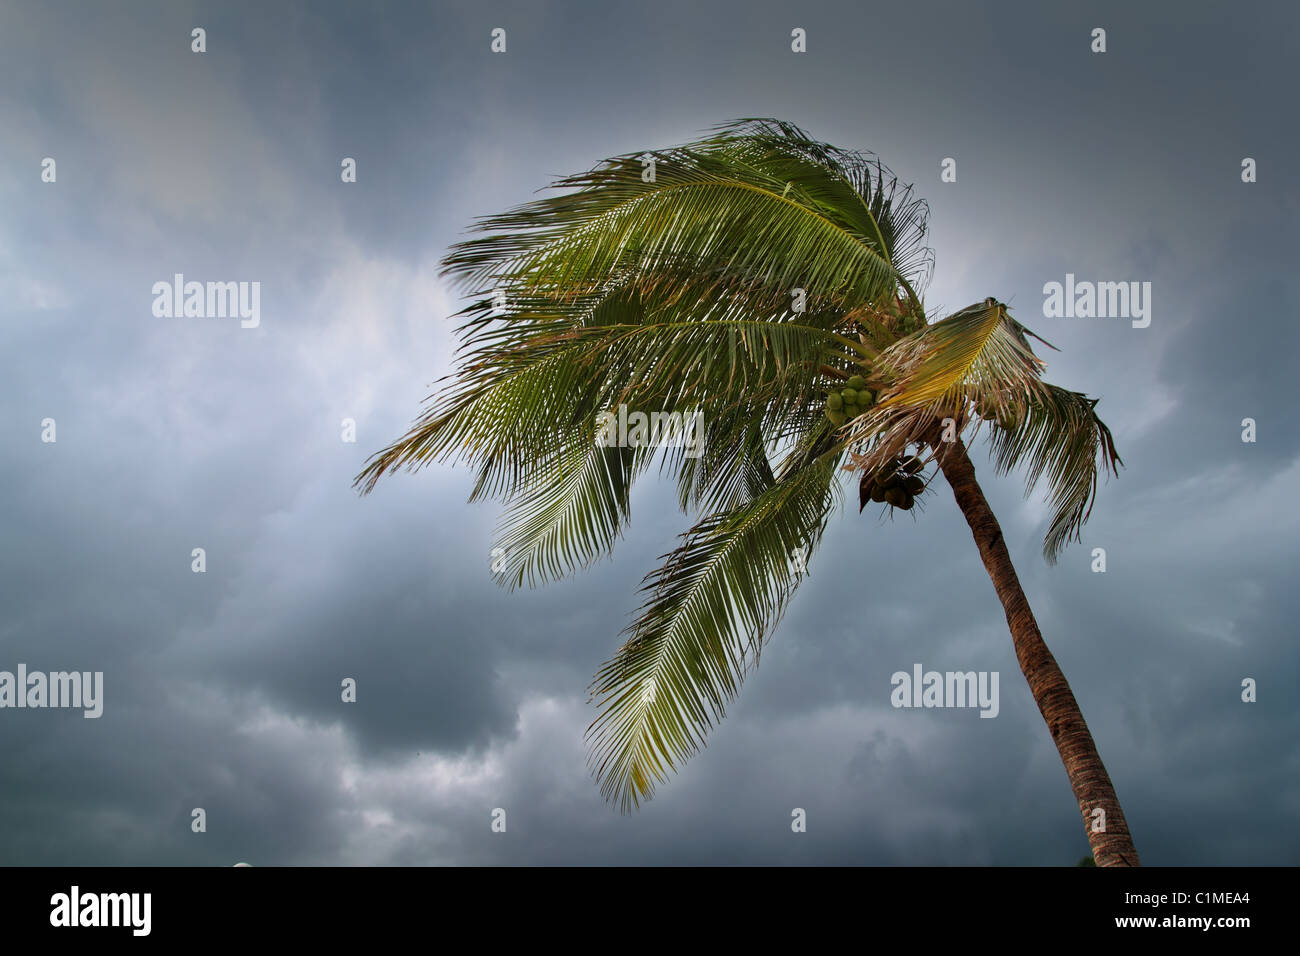 hurricane tropical storm coconut palm tree leaves cloudy gray sky - Stock Image